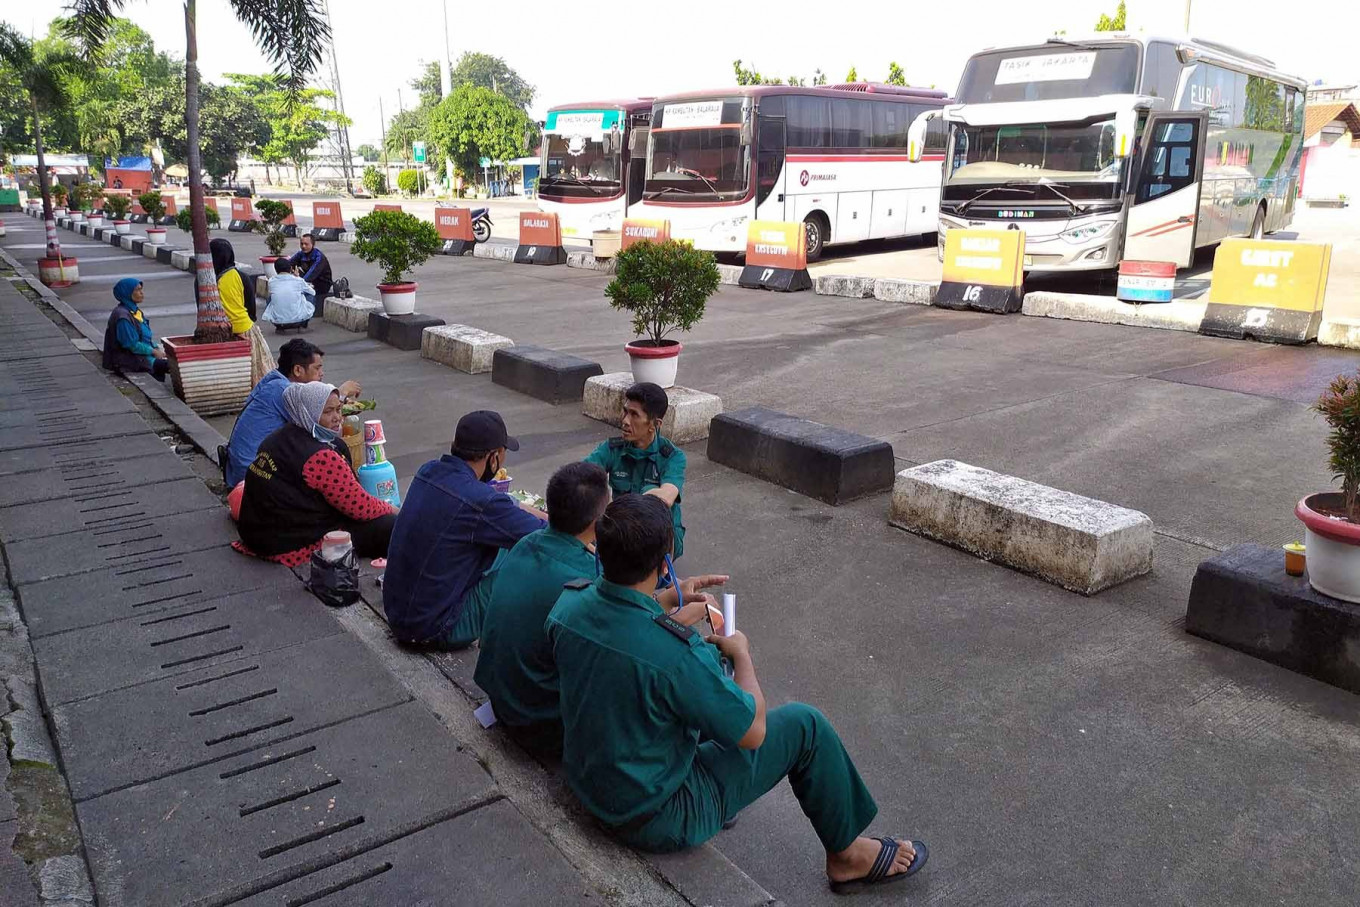 Intercity bus drivers and workers eat snacks while waiting for passengers at Kampung Rambutan terminal on Thursday. Bus service to West Java and Banten has resumed at the terminal. JP/P.J.Leo